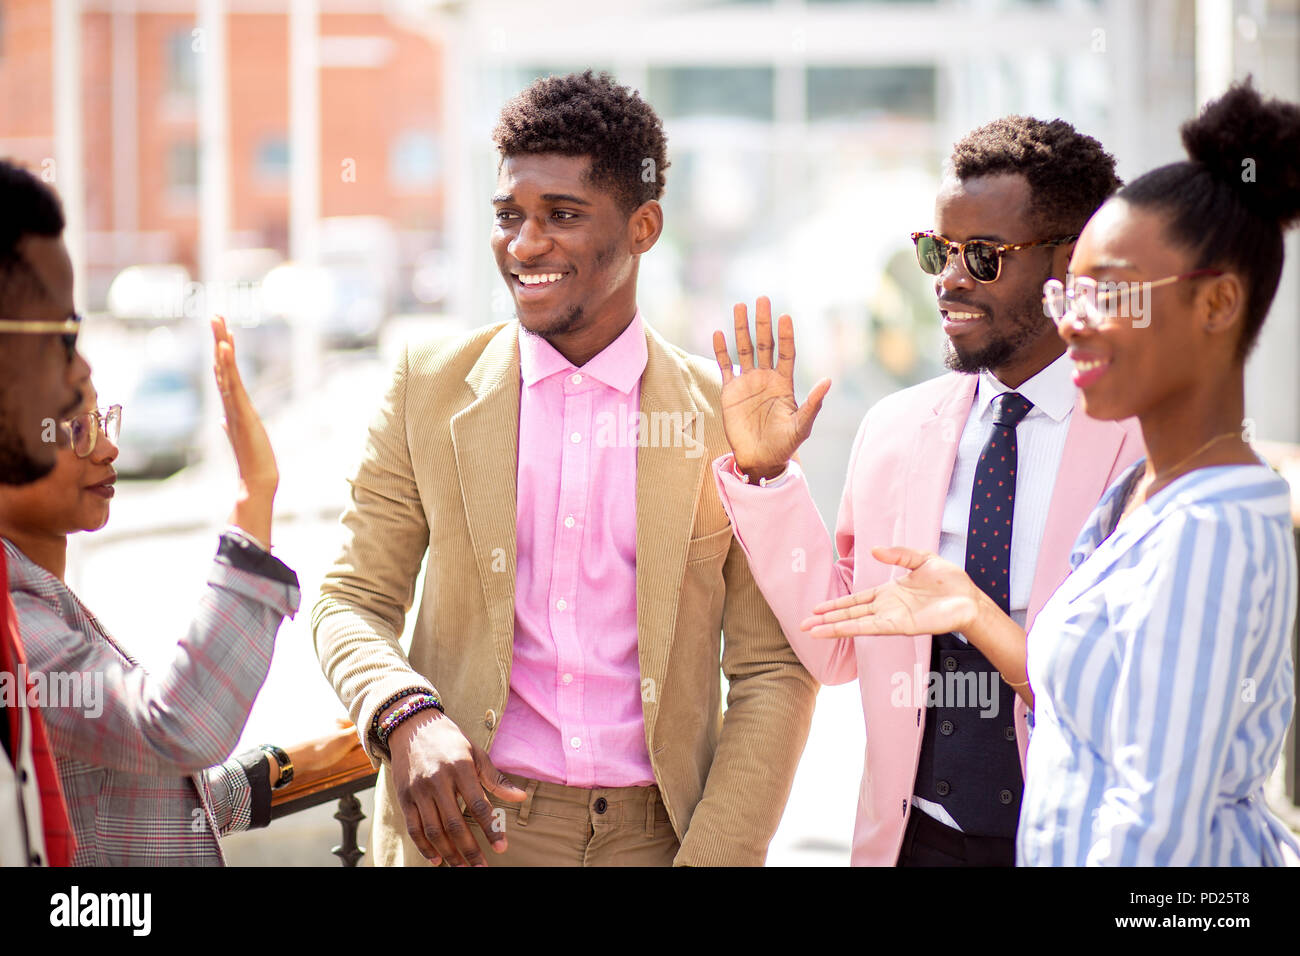 fasion students are giving high five in the street beacause they